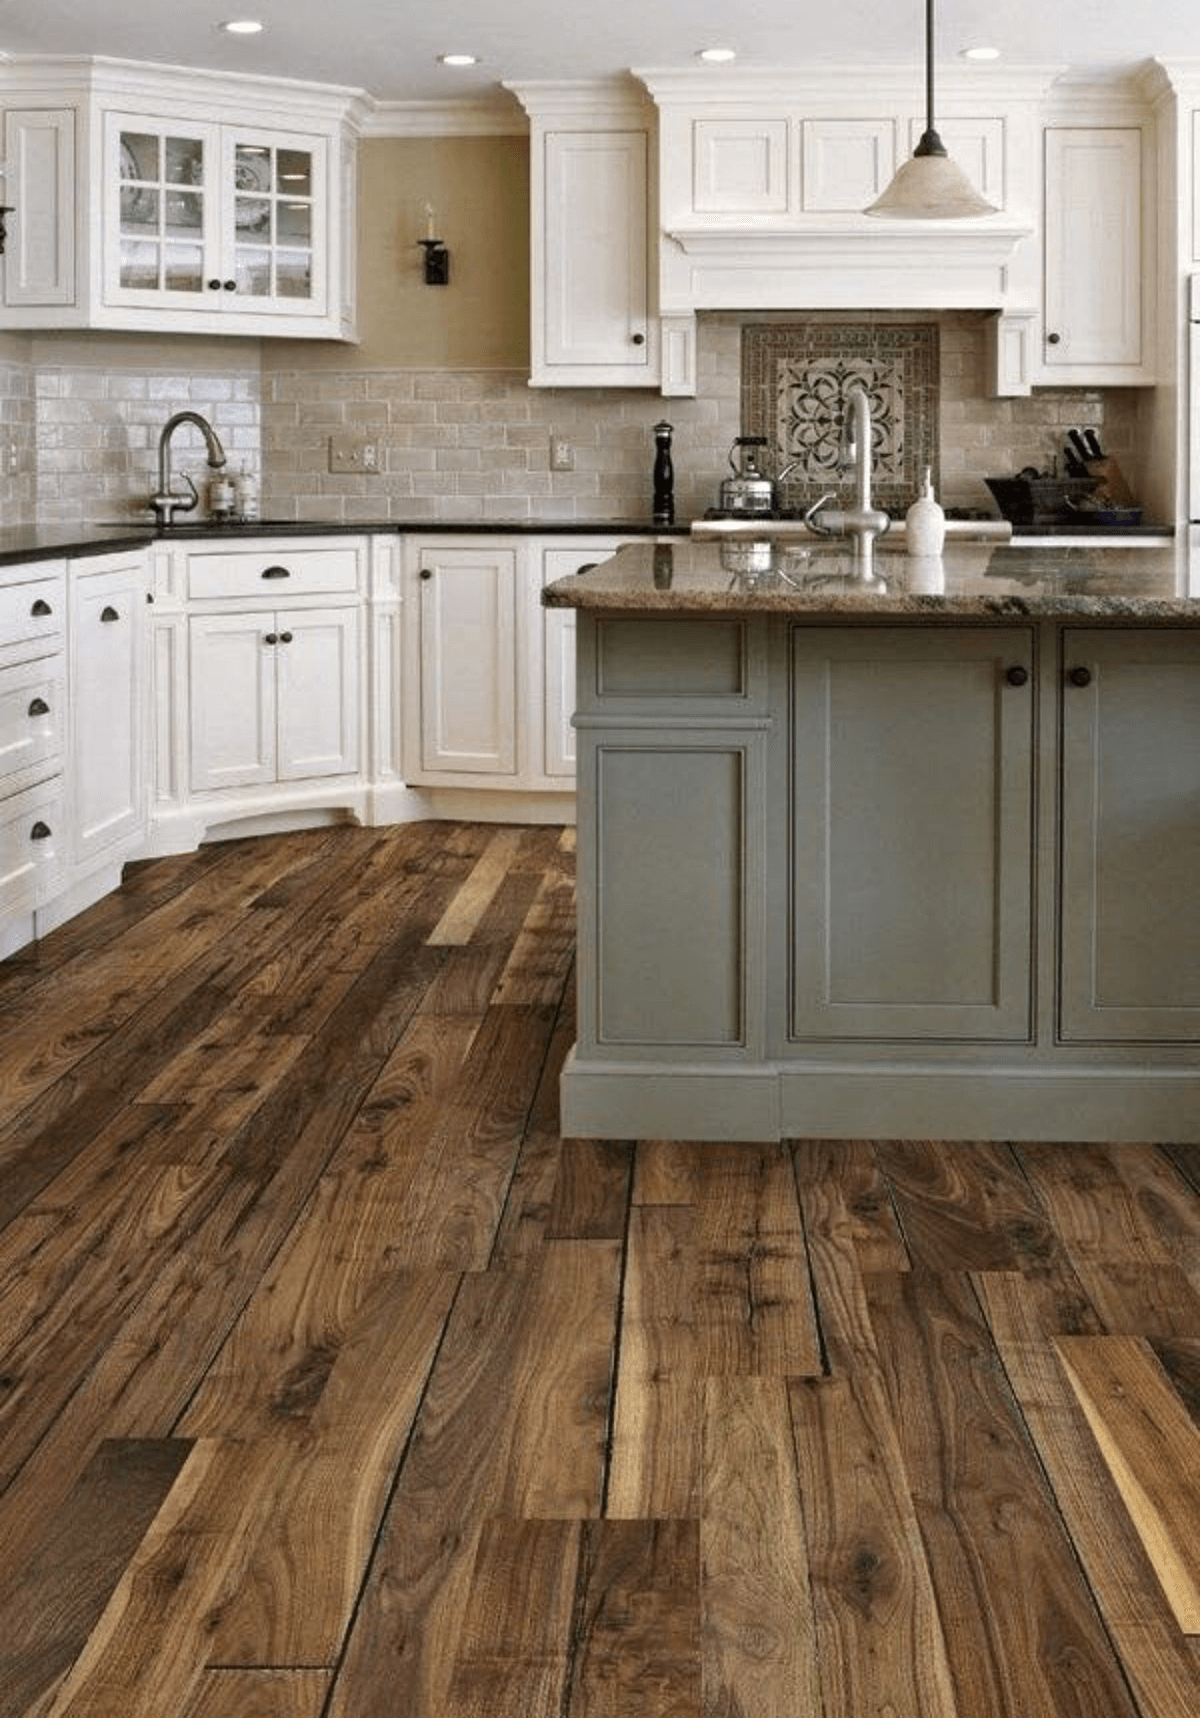 Pacific Northwest Wood-Laid Kitchen